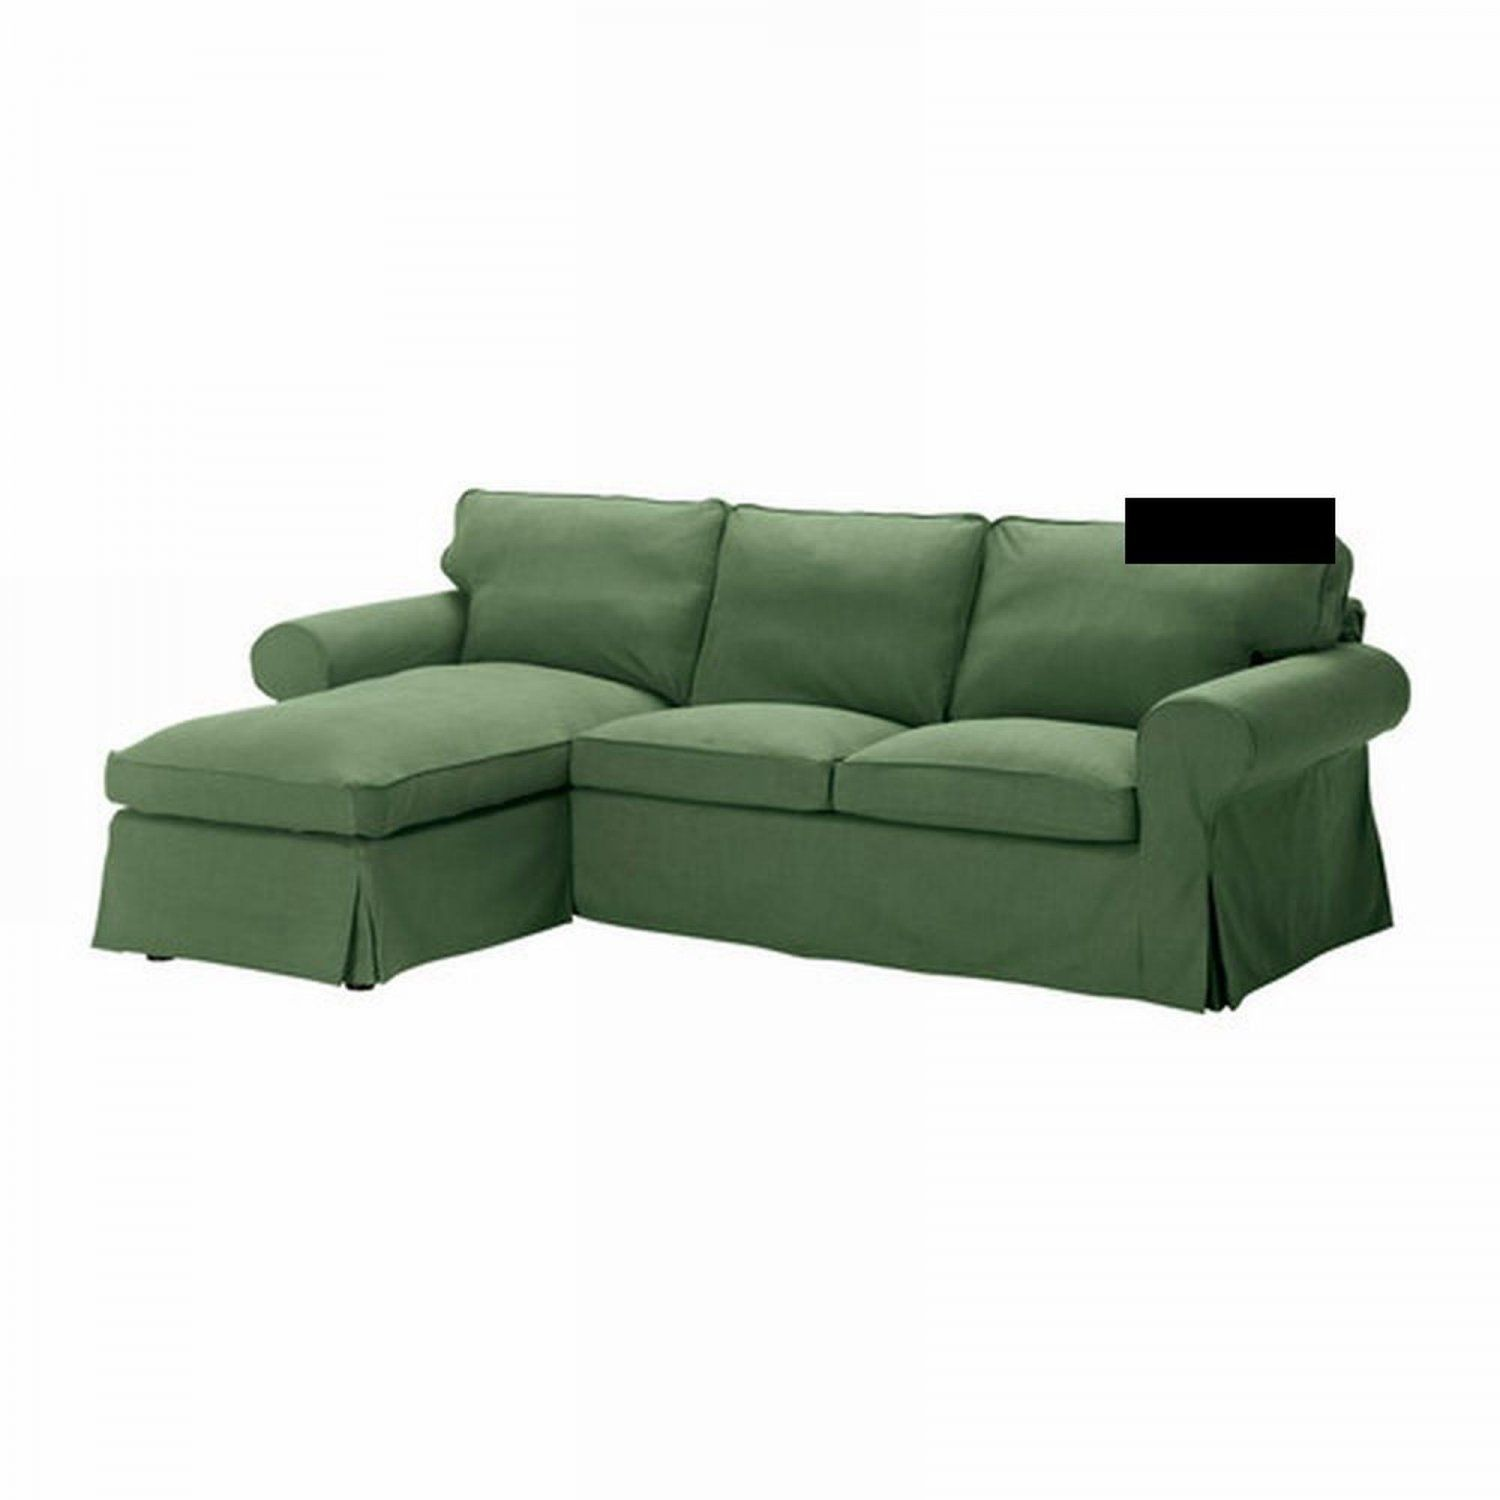 Ektorp Sofa From Ikea Ikea Ektorp 2 Seat Loveseat Sofa With Chaise Cover Slipcover